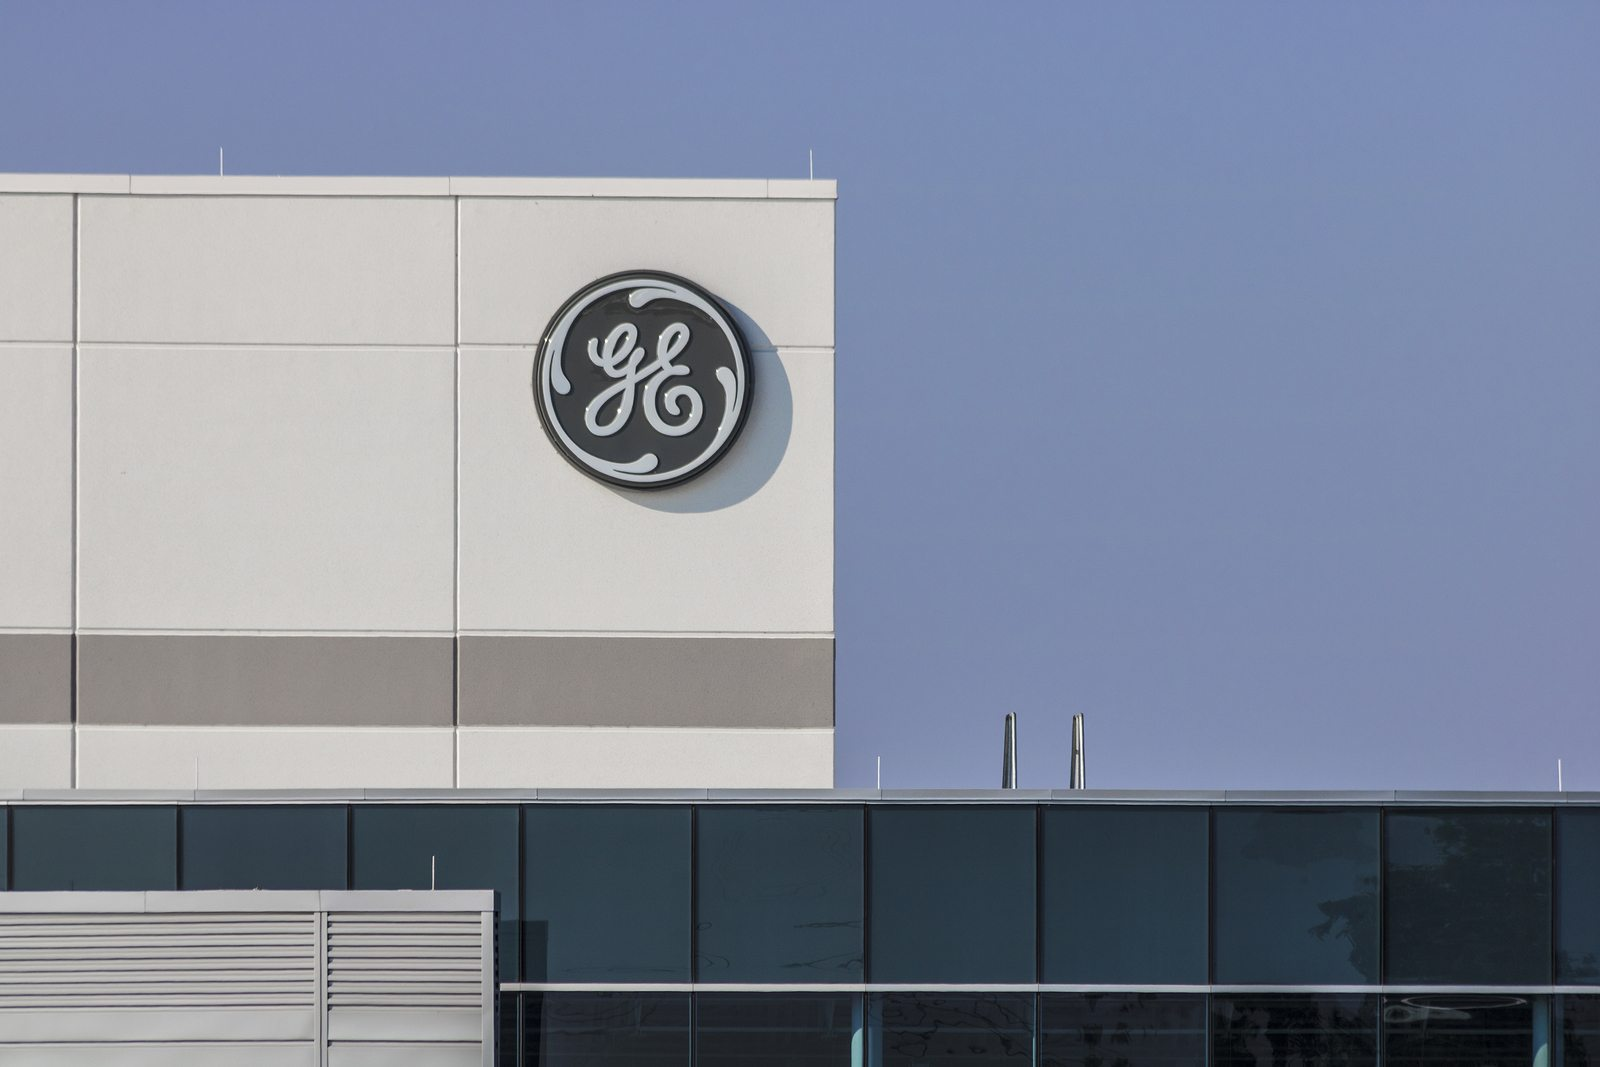 GE Renewable Energy to develop with Mass Energy Group its 1st wind farm project in Jordan